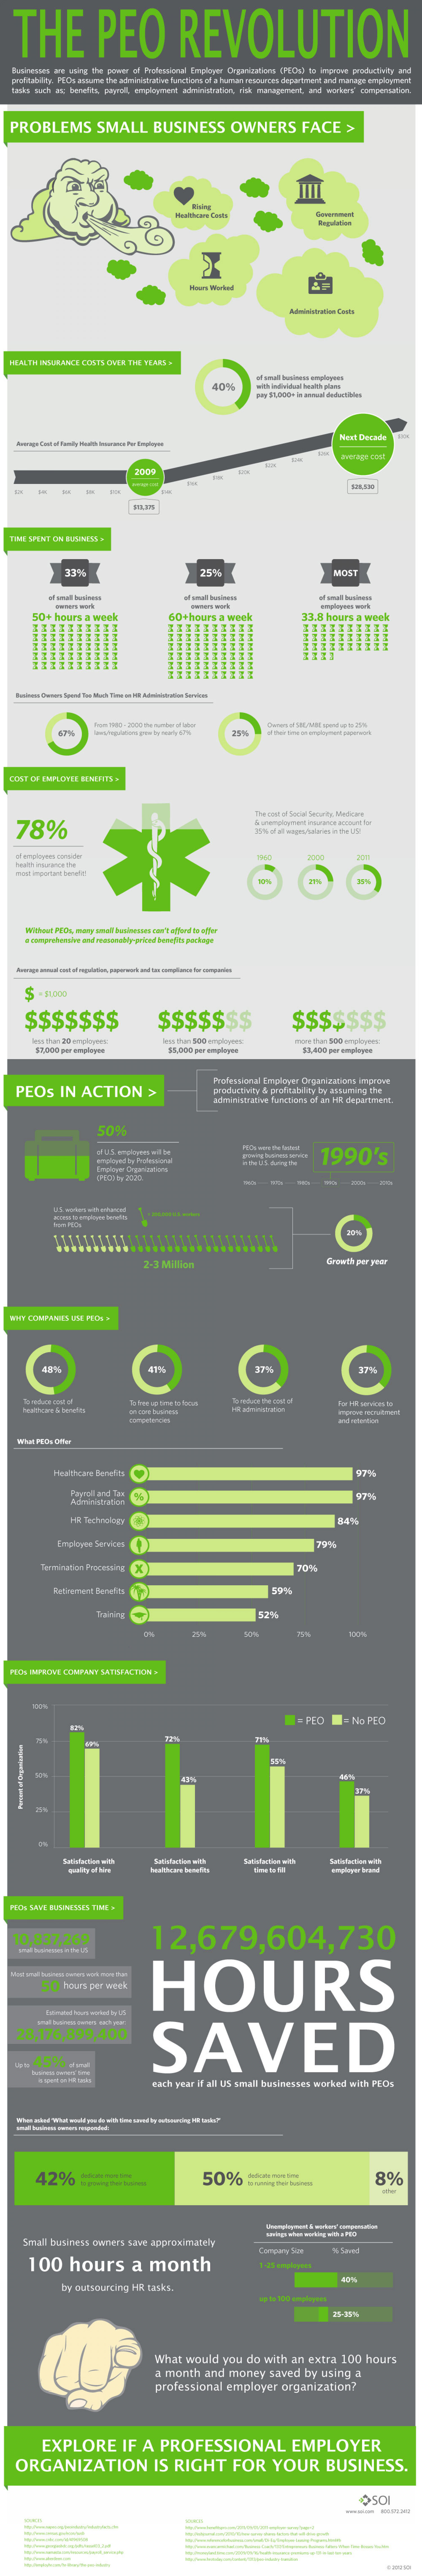 The PEO Revolution - SOI A Professional Employer Organization Infographic